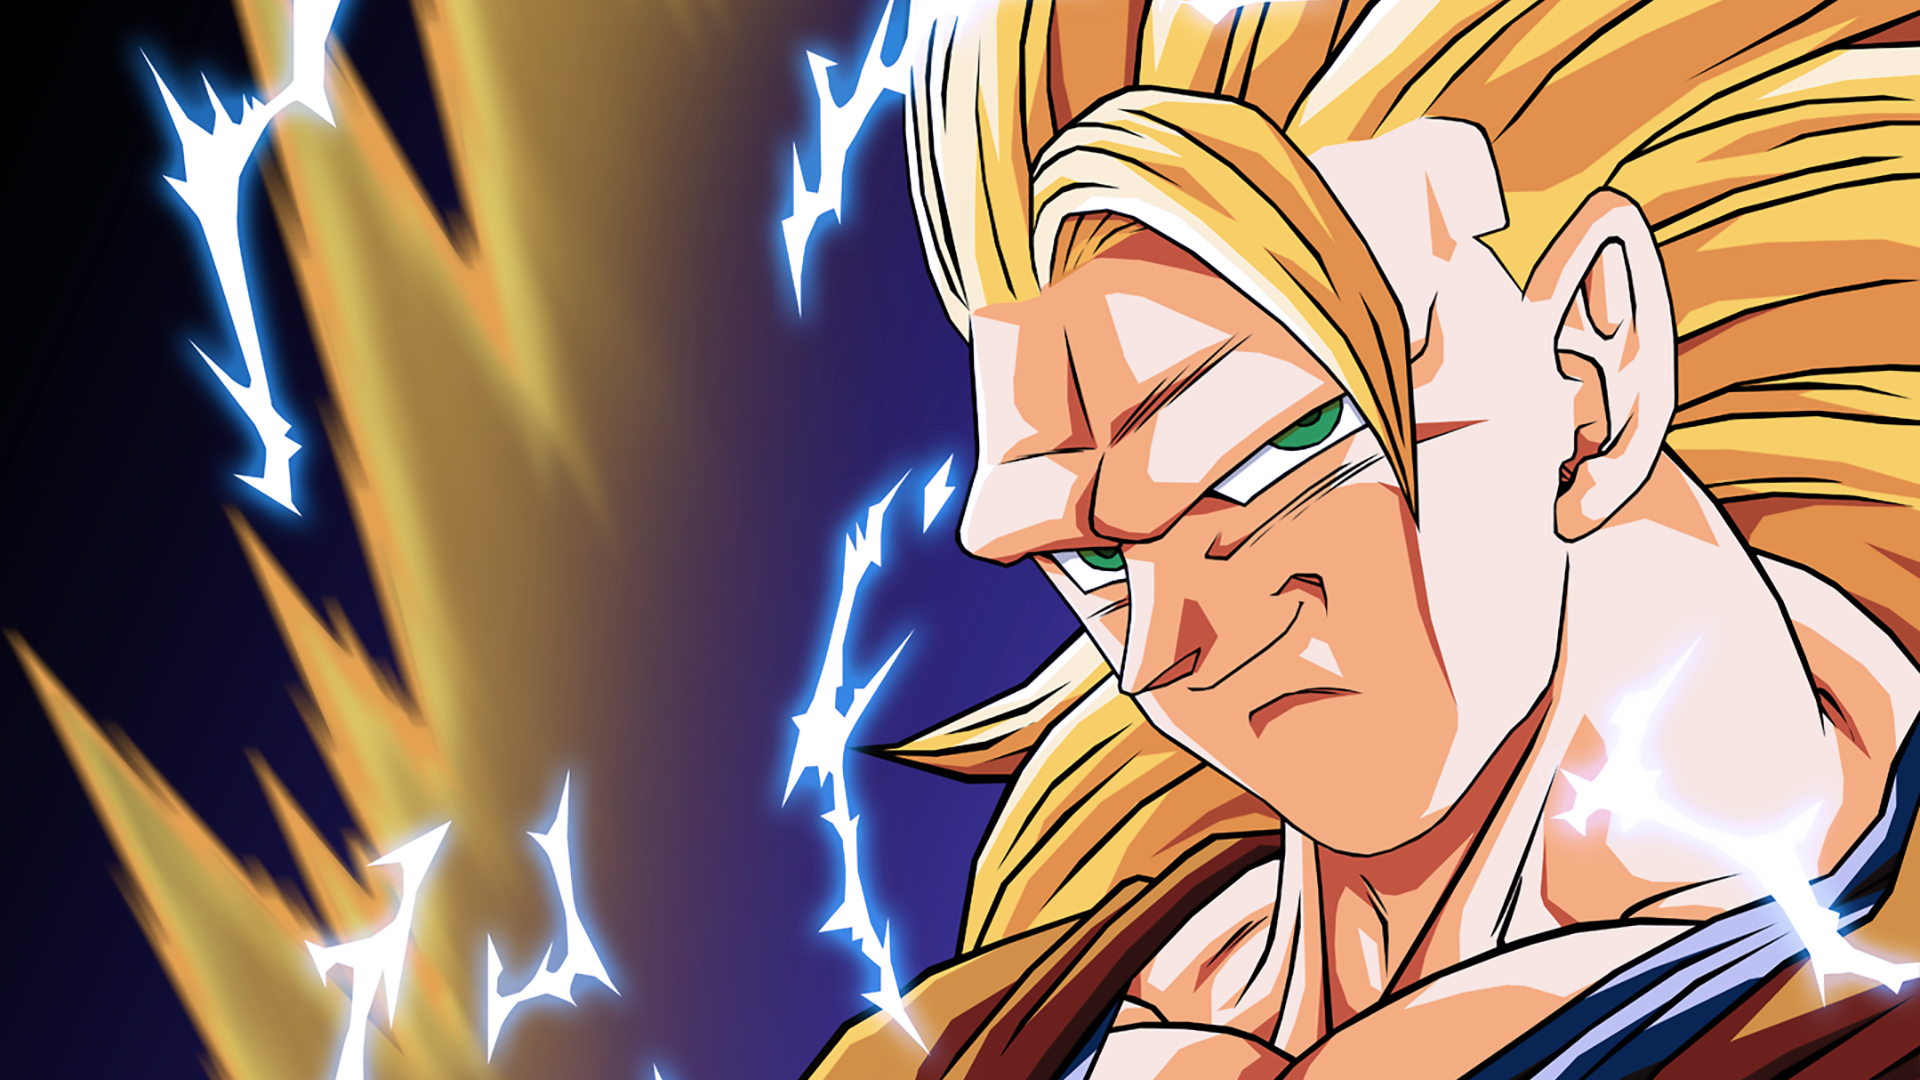 Goku Wallpapers ID680633 Download Next Wallpaper Prev Super Saiyan 3